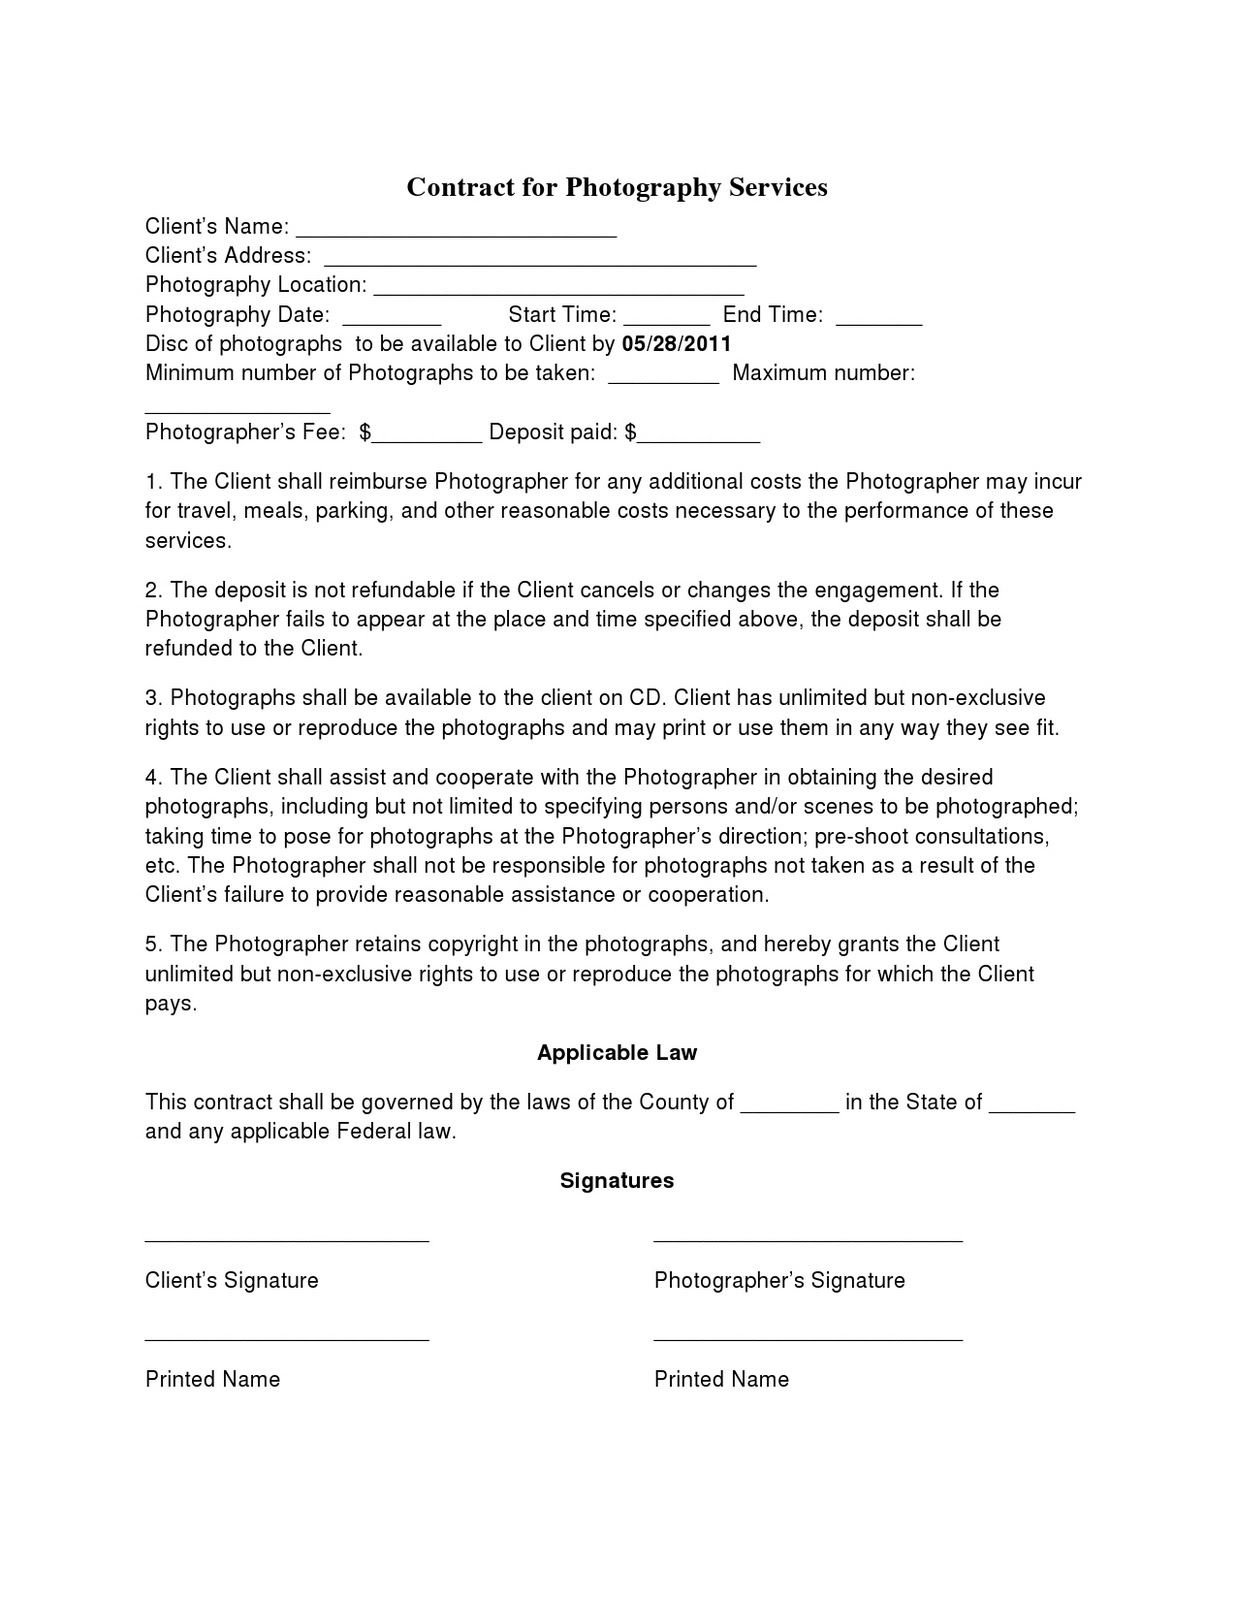 Non Compete Agreement Photography Contract Template Wedding Photography Contract Template Photography Contract Wedding Photography Contract